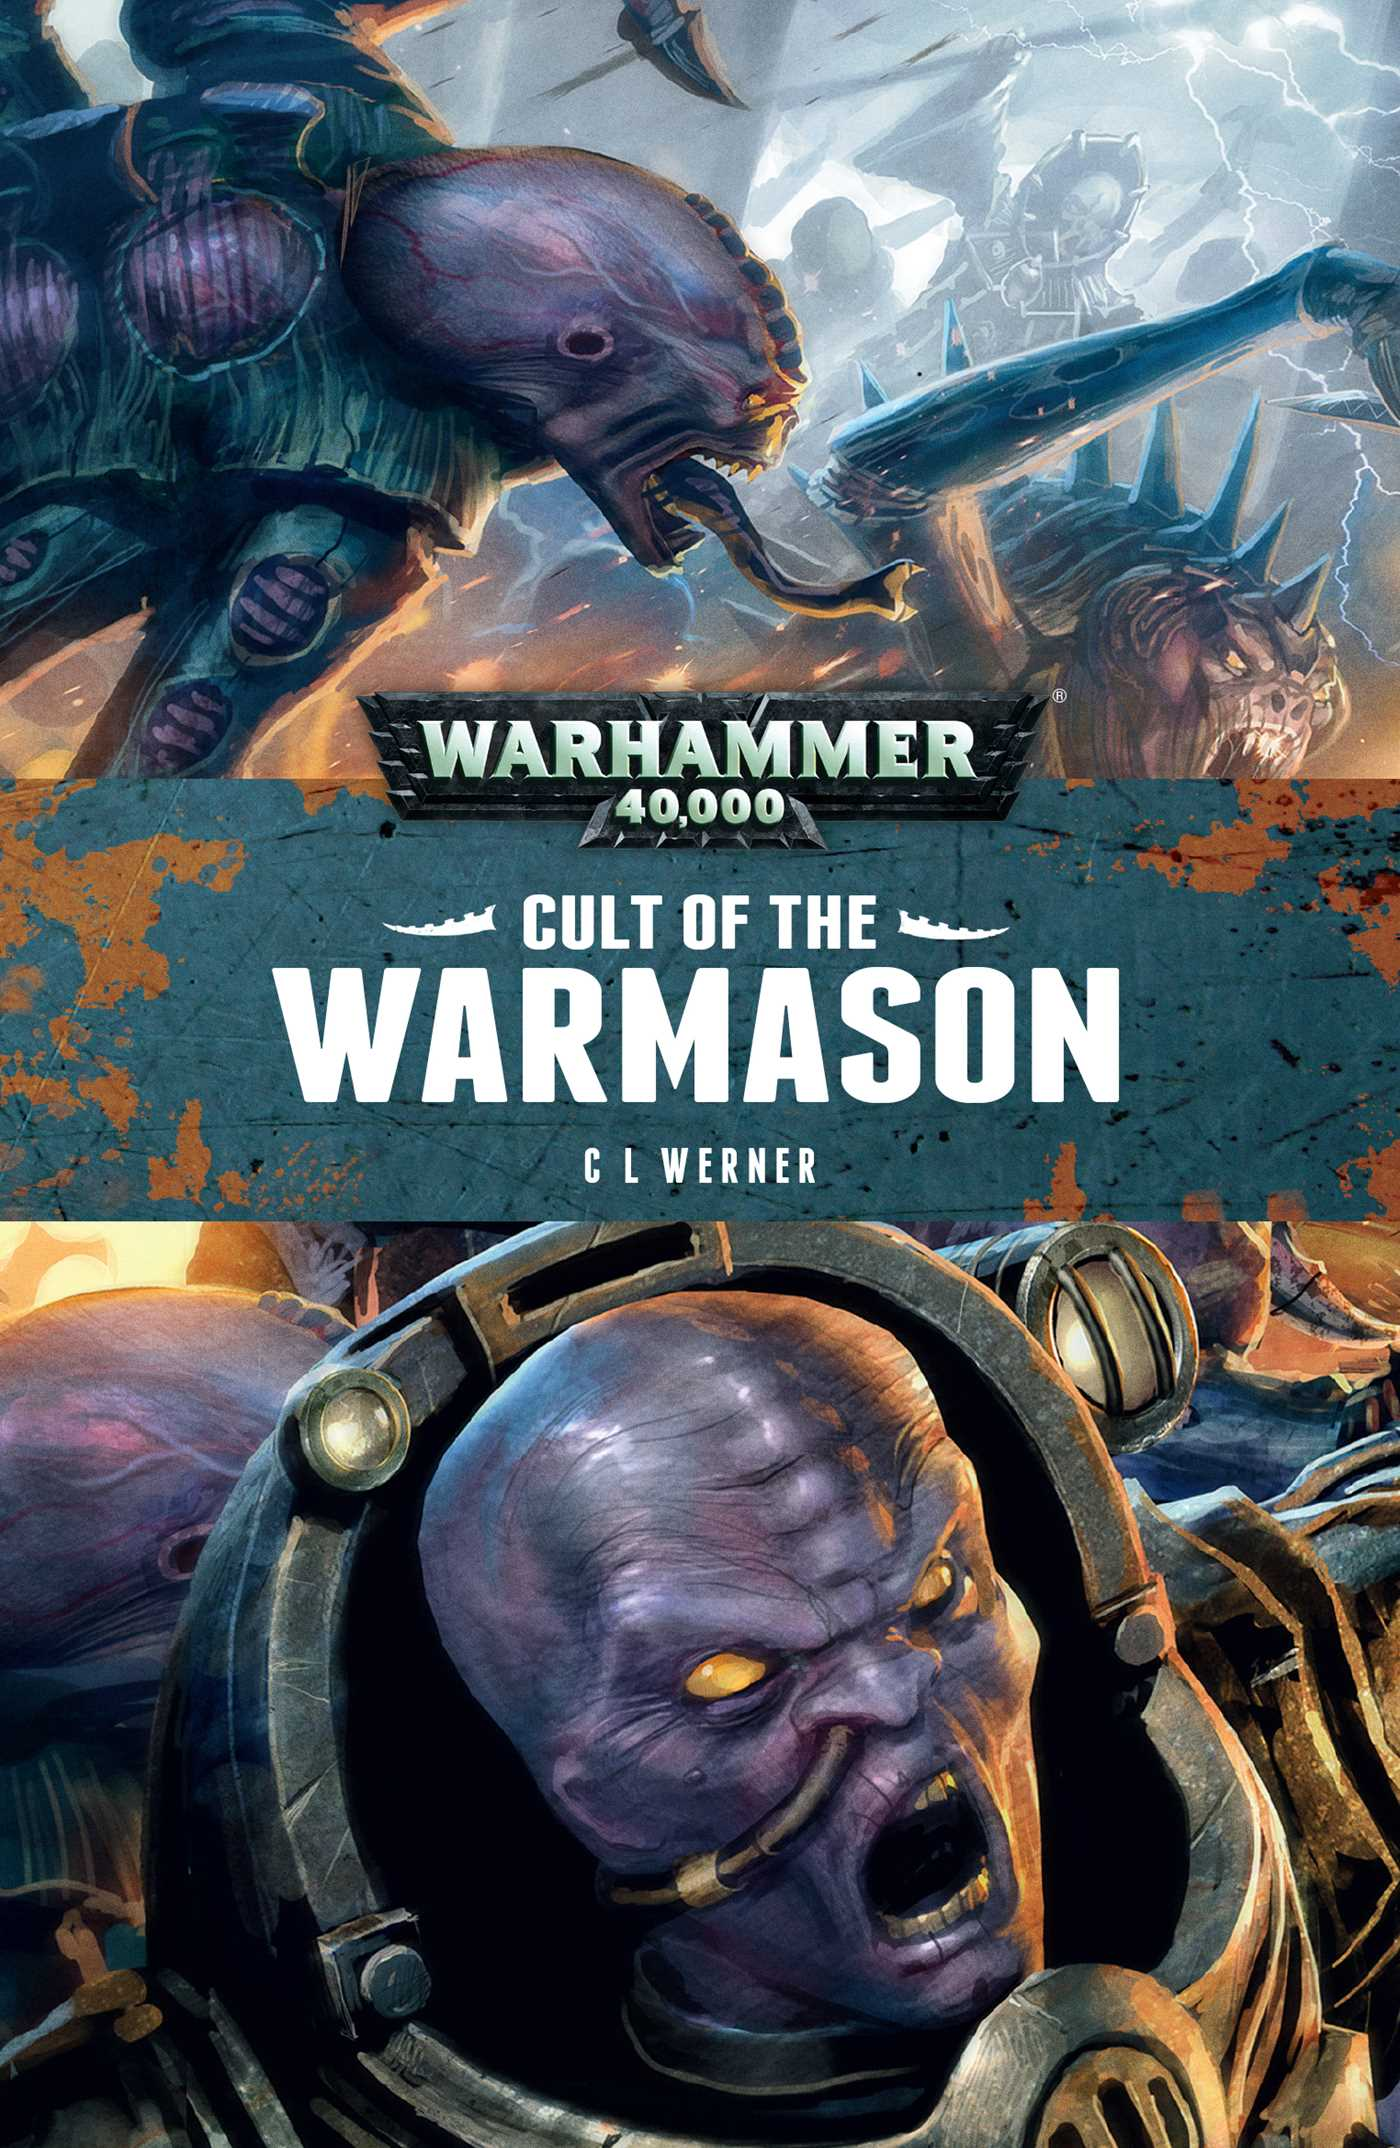 Cult of the warmason 9781784966140 hr